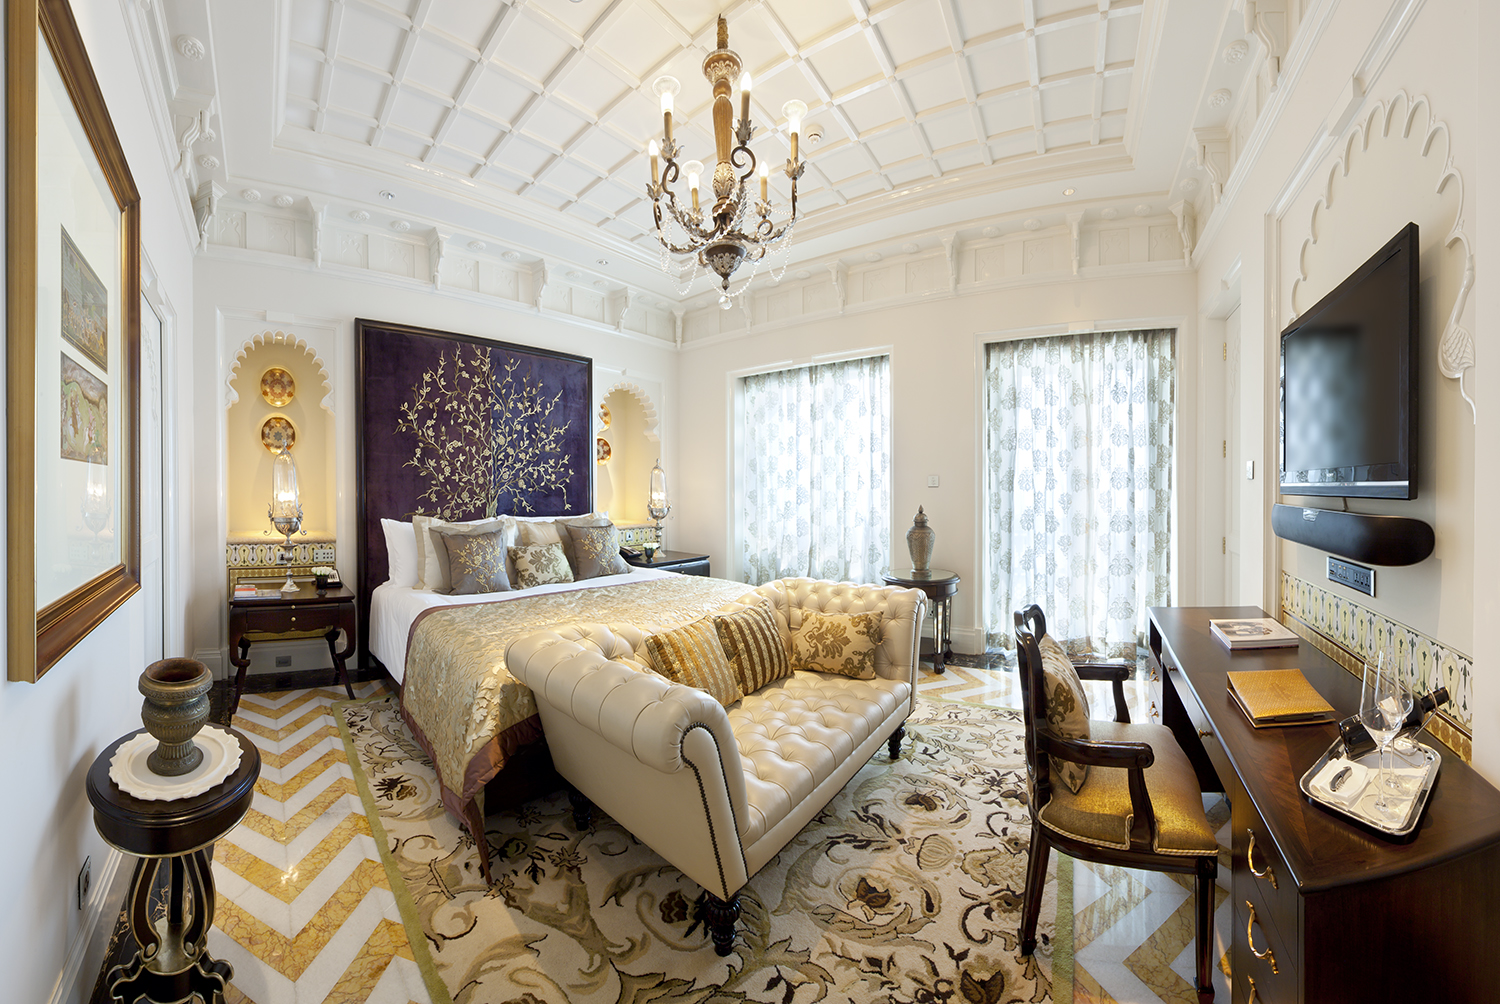 Taj-Mahal-Palace Top 25 Most Luxurious Rooms in the World